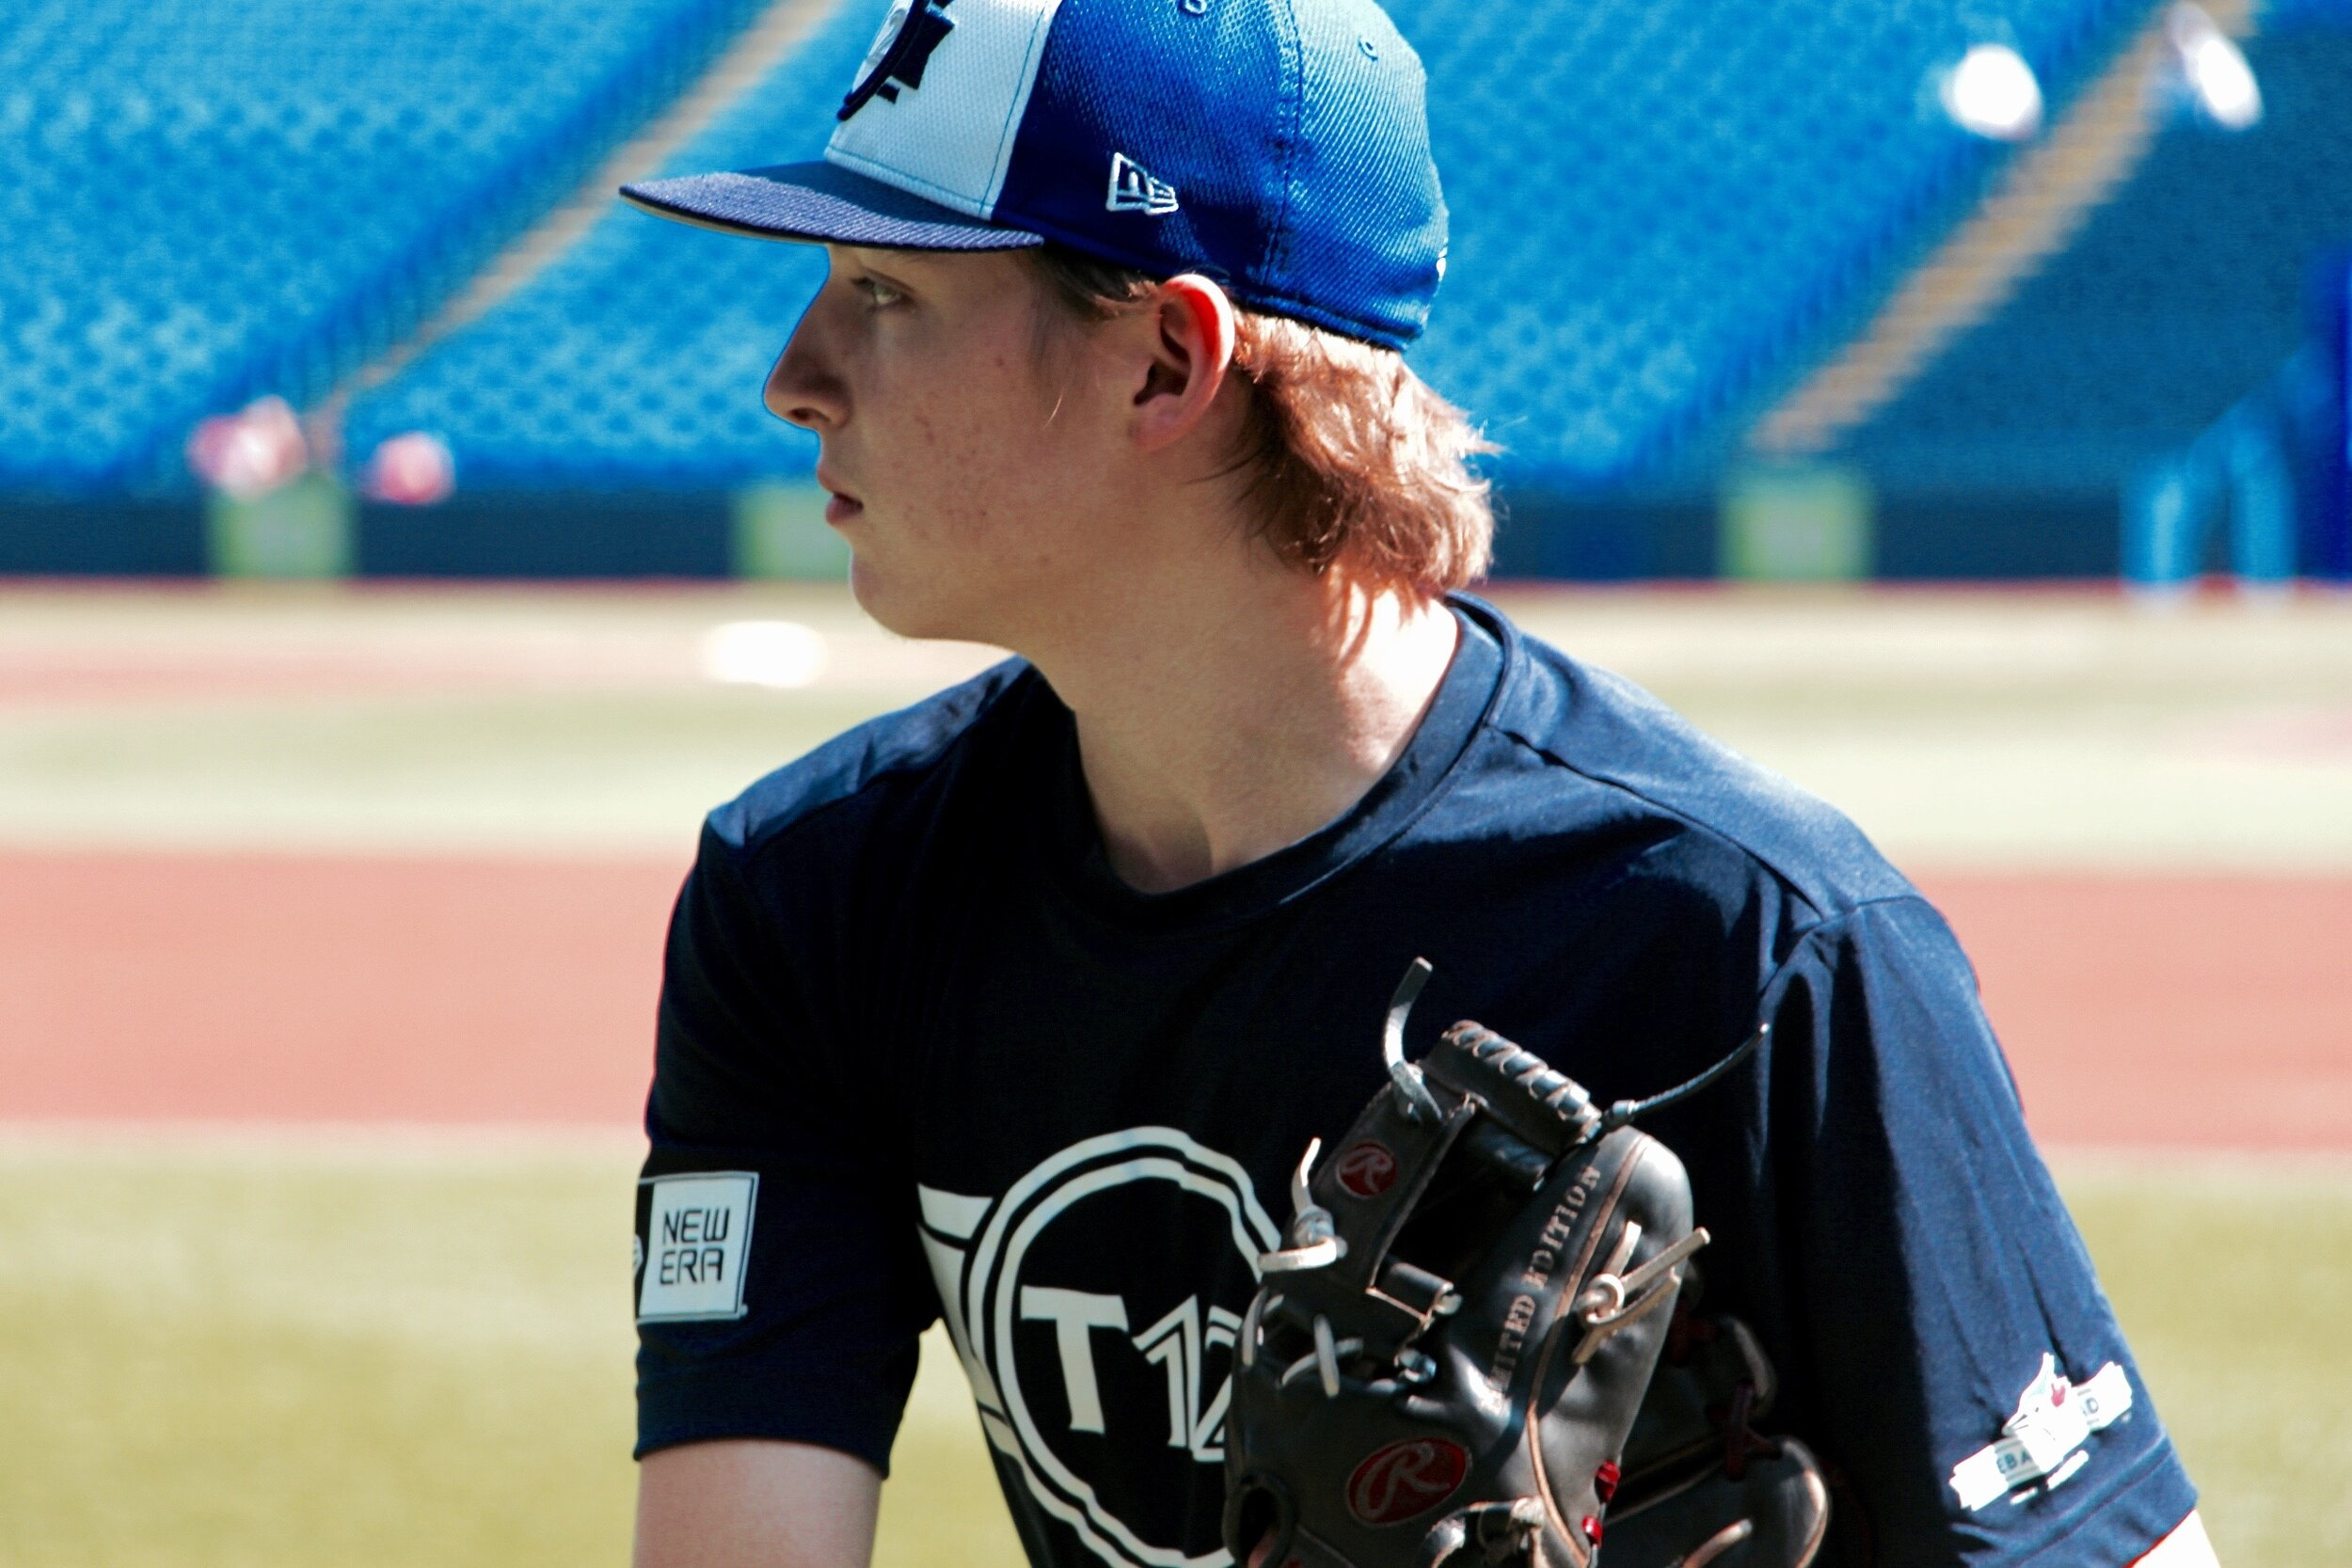 Northeast Baseball 15U Pirates RHP/SS Matthew Grabmann (Cole Harbour, N.S.) warms up before the Tournament 12 Prospects Game on Saturday. Photo: Tyler King